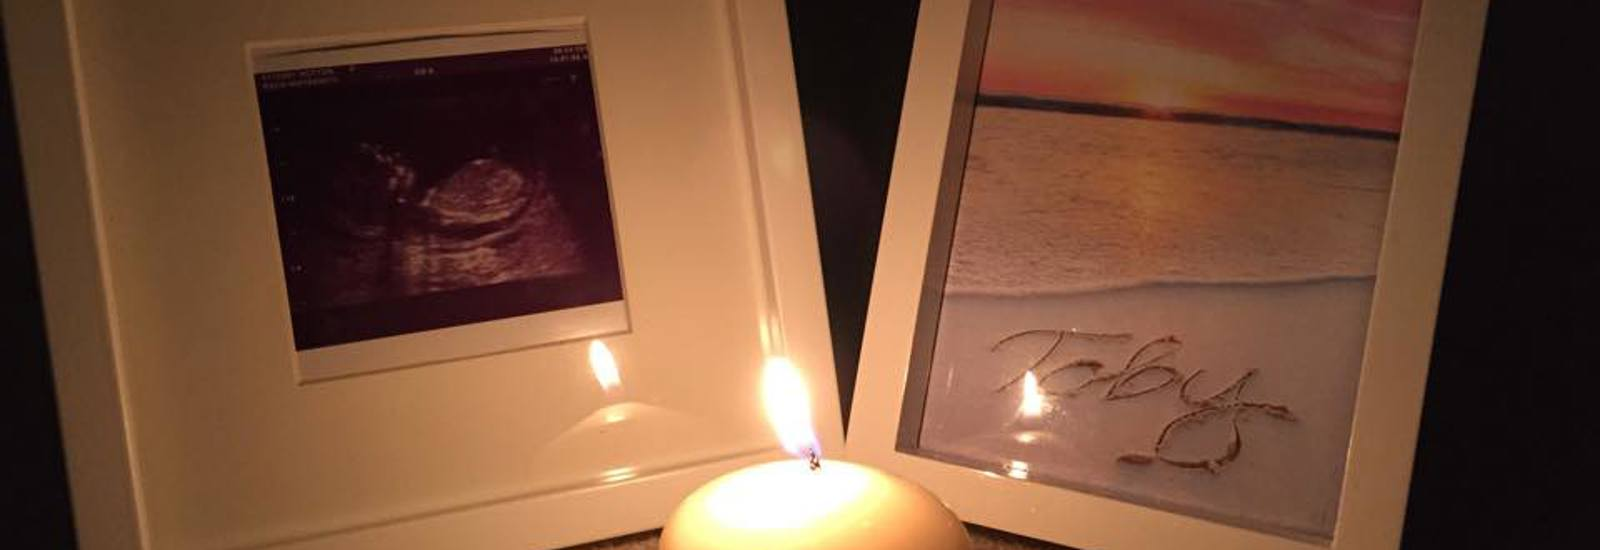 Stillborn angel baby memorial candle wave of light